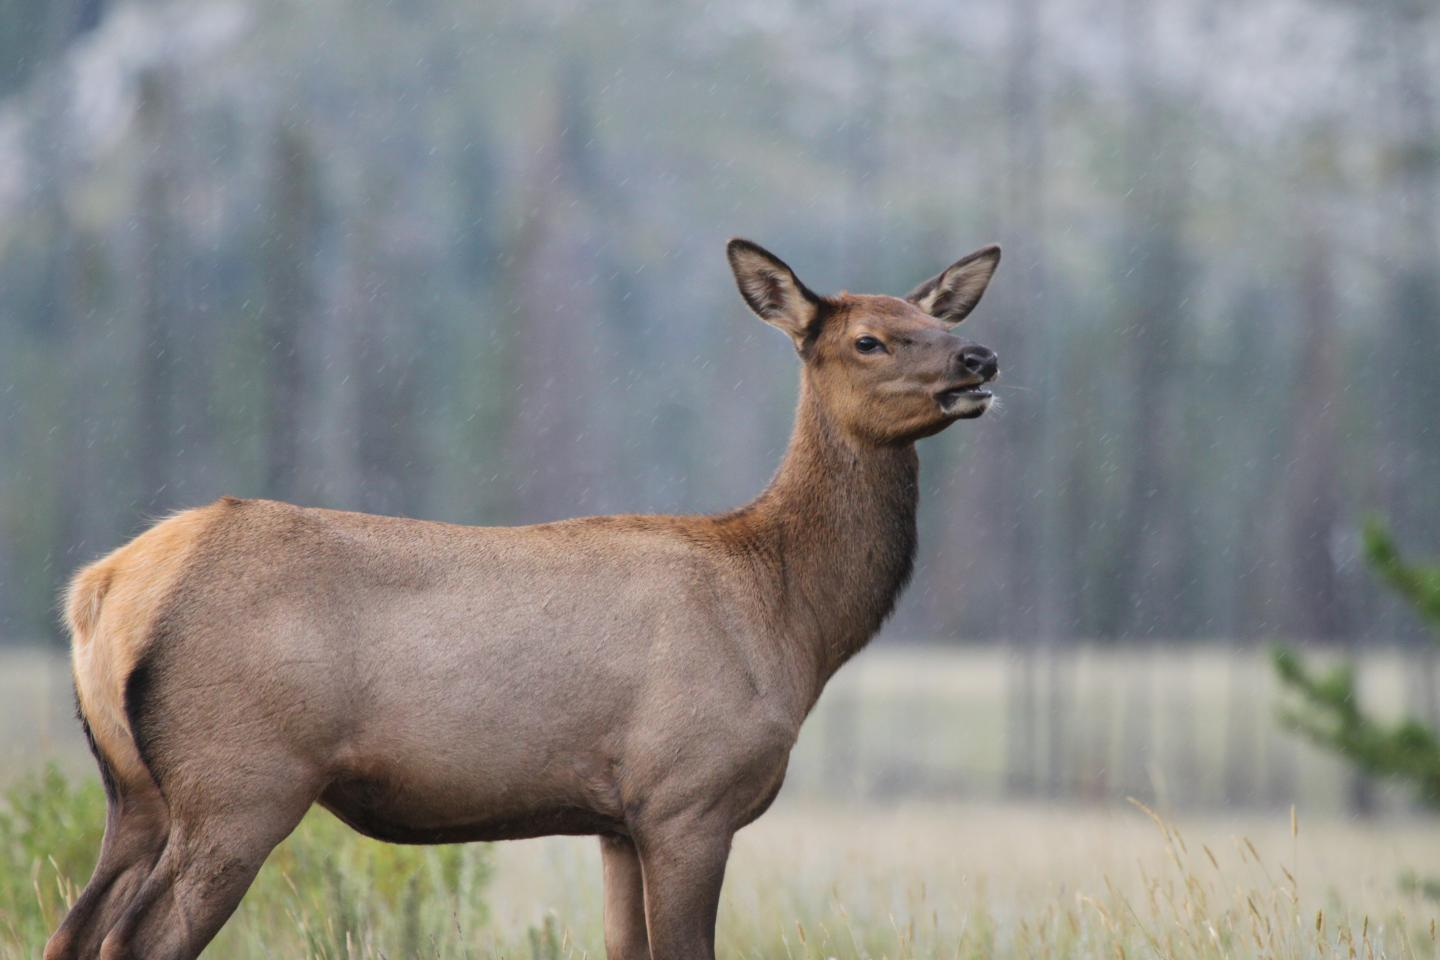 Female Elk Can Learn to Avoid Hunters with Age